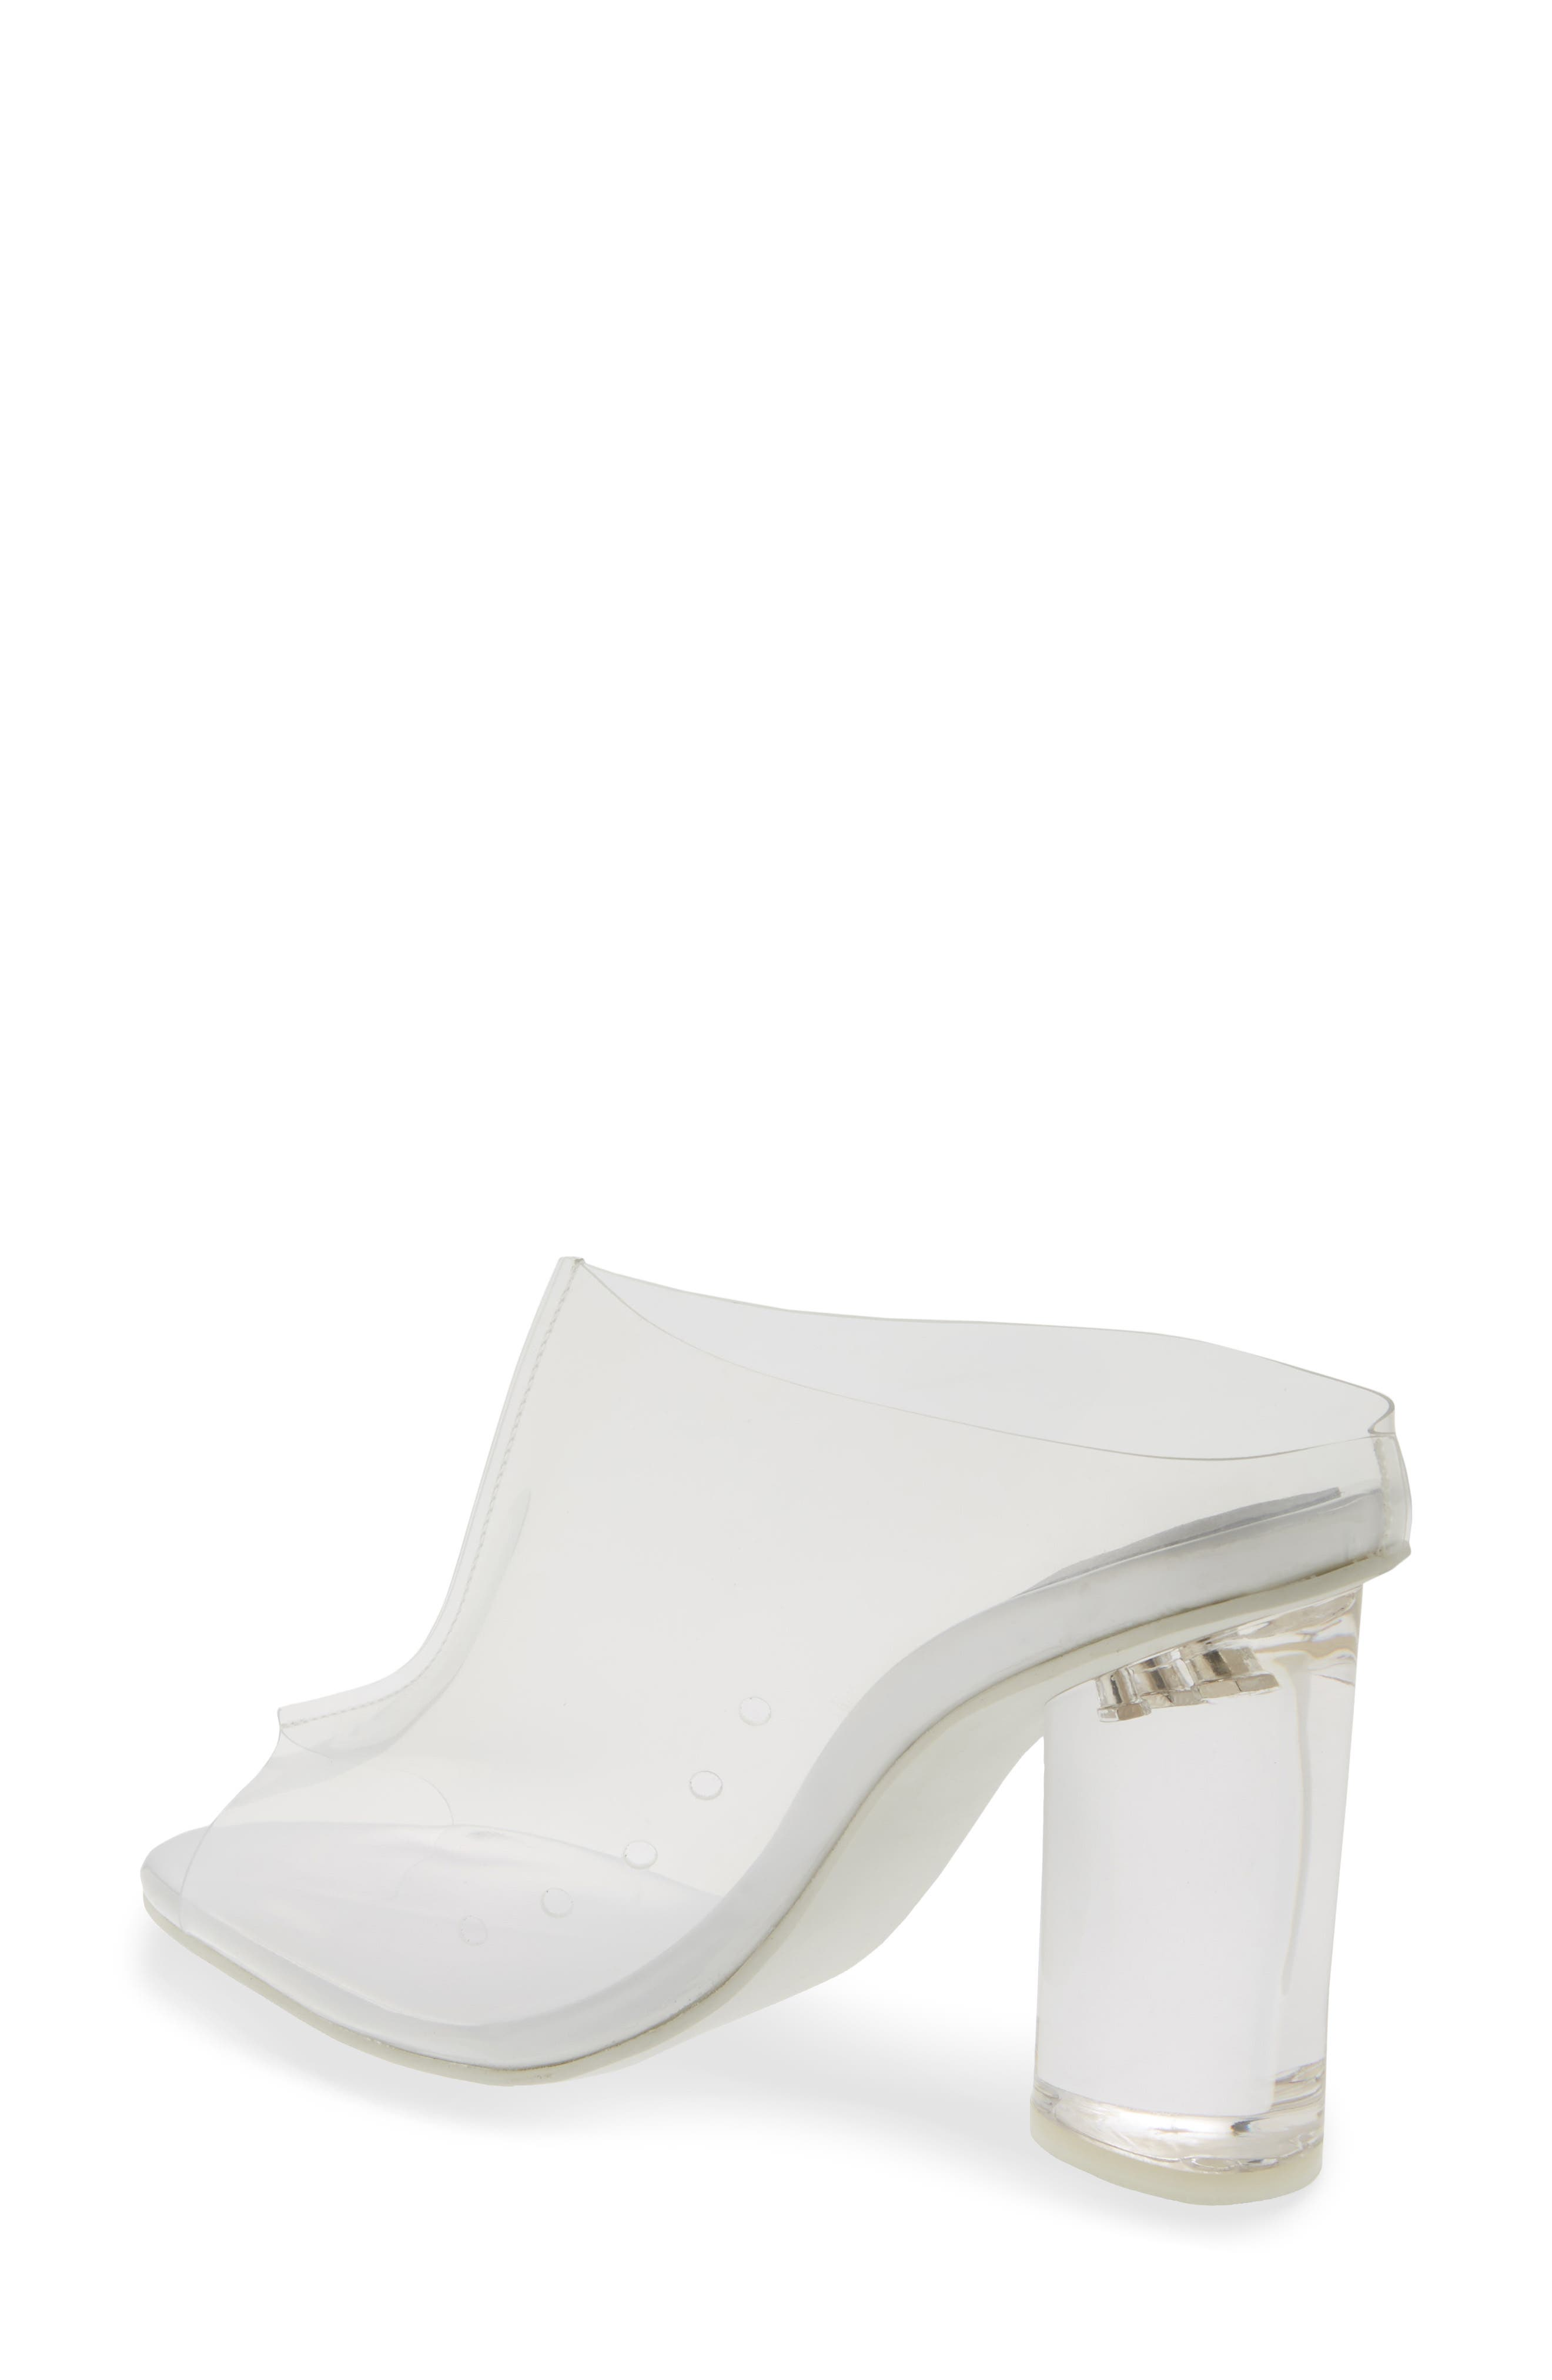 Divinity Column Heel Mule,                             Alternate thumbnail 2, color,                             CLEAR